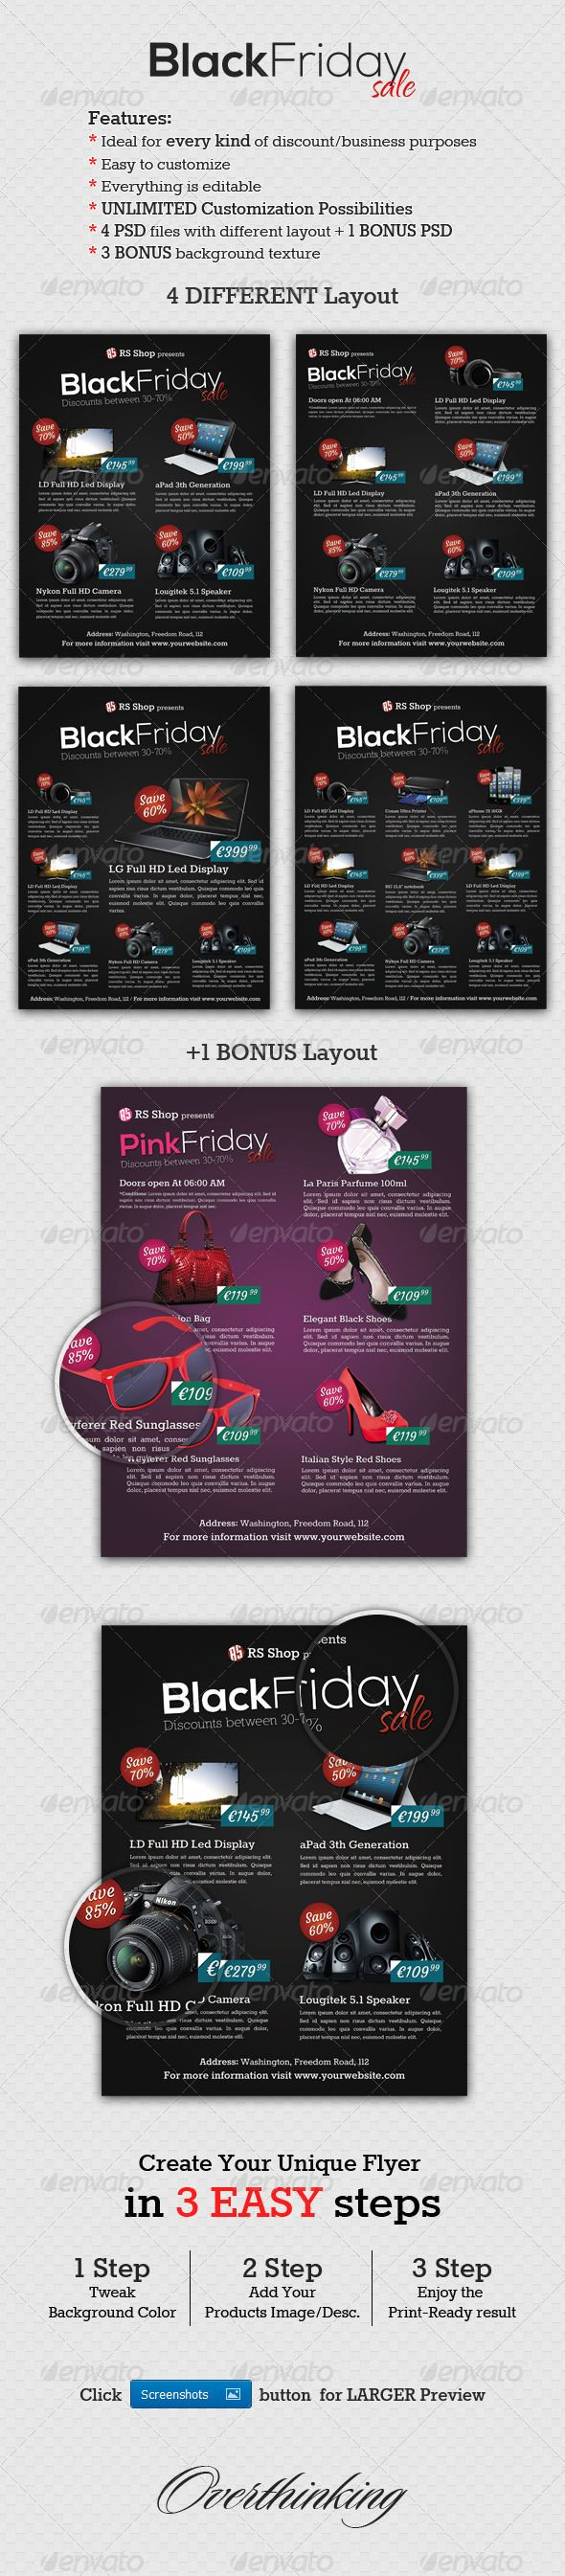 Black Friday Promotion / Sale Flyer Template  #GraphicRiver         Black Friday Promotion / Sale Flyer Template is ideal to promote your Company`s sale, promotion or discount campaigns. If you want professional, eye-catching, clean designed flyers, these premium templates could be a great choice for You.   Can be useful for any type of shopping department, like: accessories, clothes, fashion, furniture, electronics, computers, office, appliances, gadgets, mobile phones, health or any…